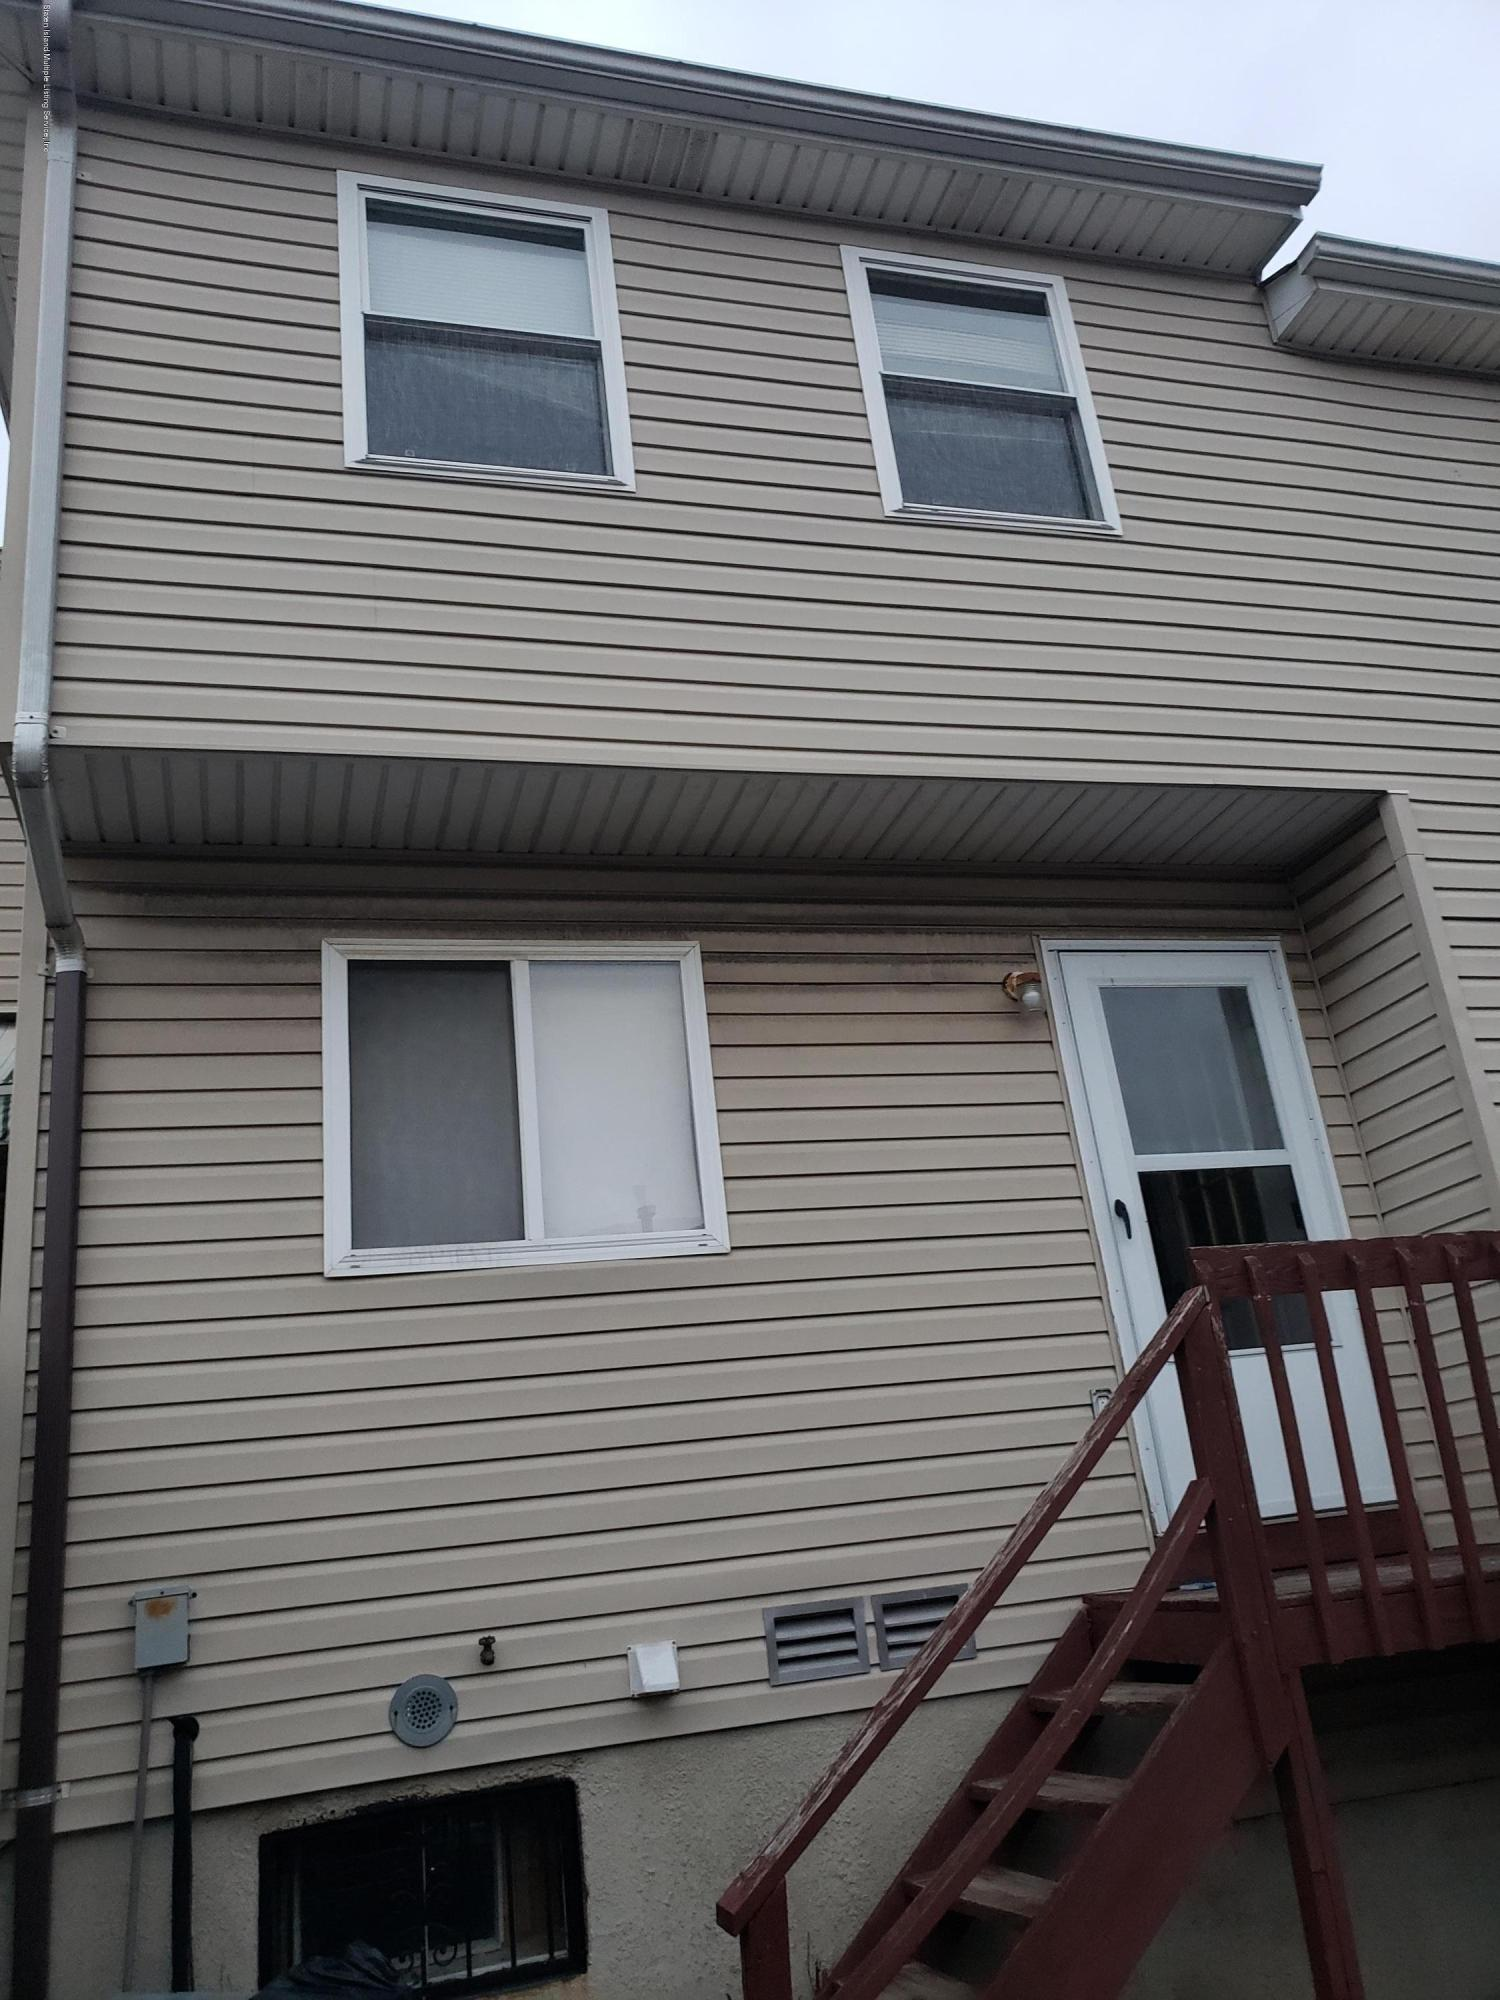 Single Family - Attached 42 Leewood Loop  Staten Island, NY 10304, MLS-1125781-27